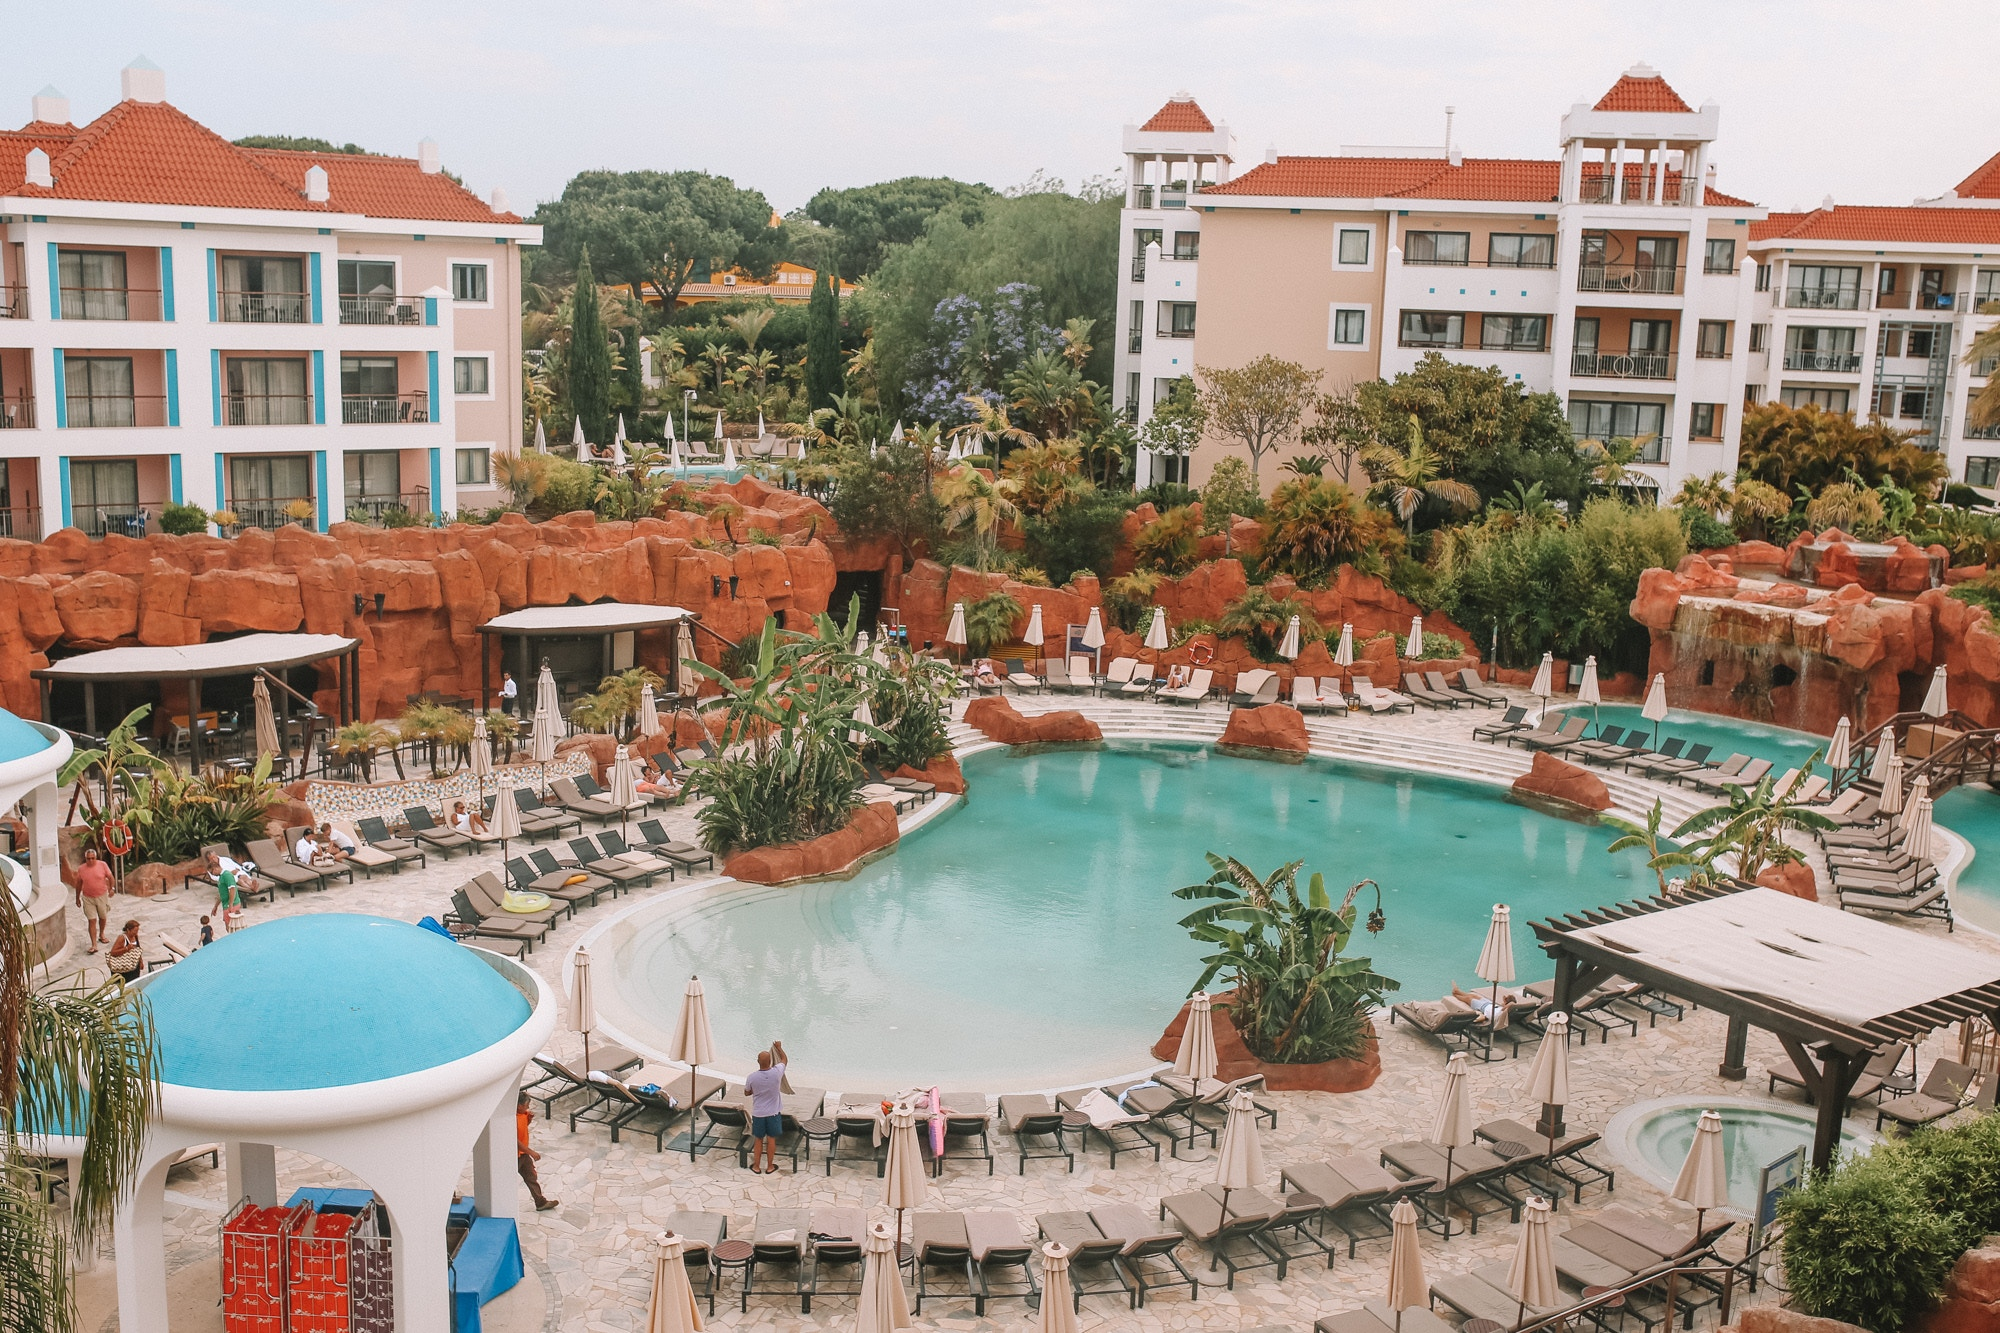 Hilton Vilamoura As Cascatas Golf Resort & Spa has six pools, pool bars, 5 restaurants and stunning gardens on the grounds. Read my full review of my stay at the luxury resort in the Algarve region.